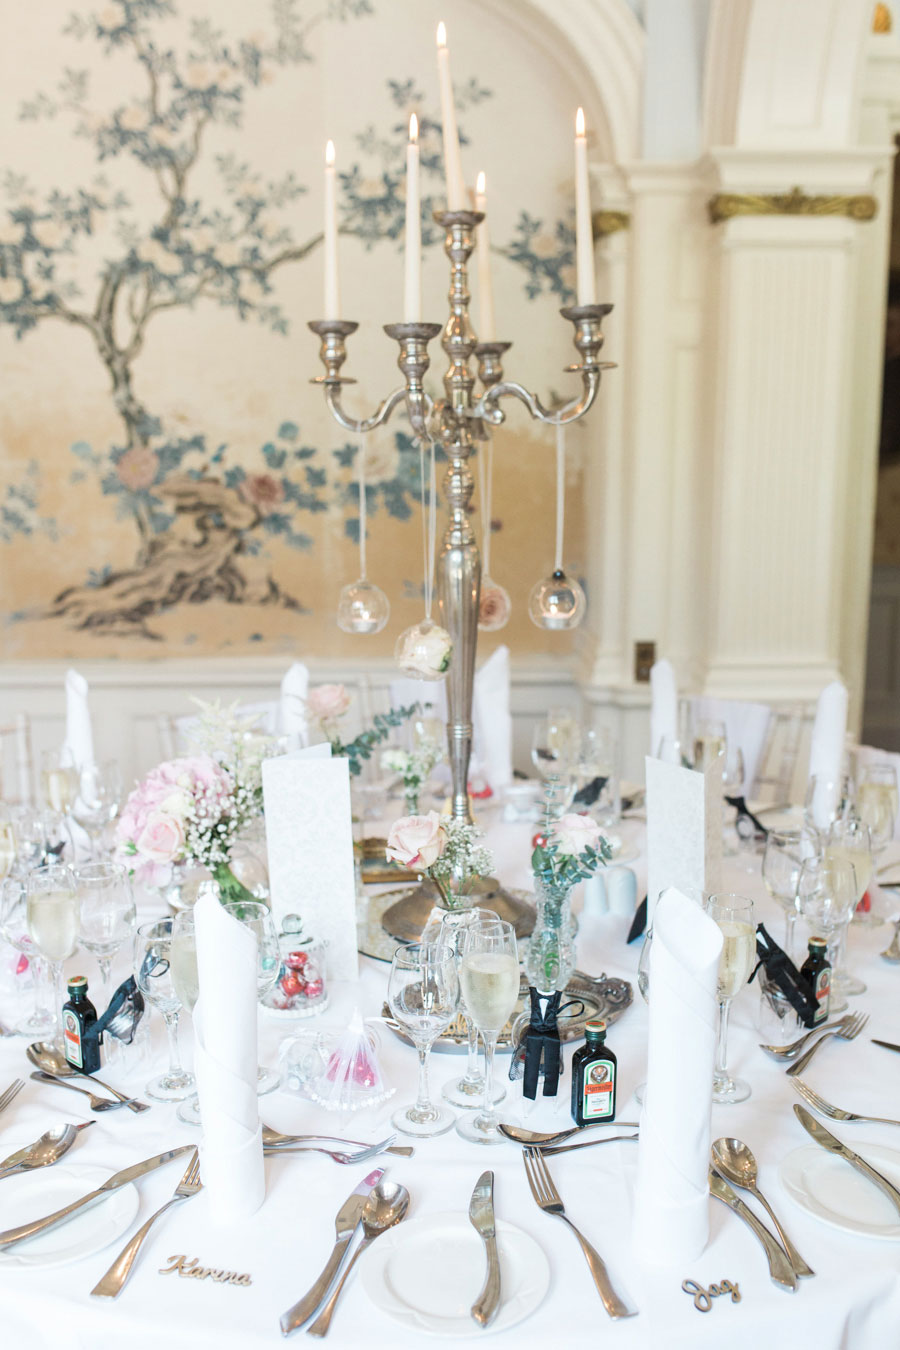 Stately Home Ballroom Wedding With Romantic Vintage Style: Tania & David